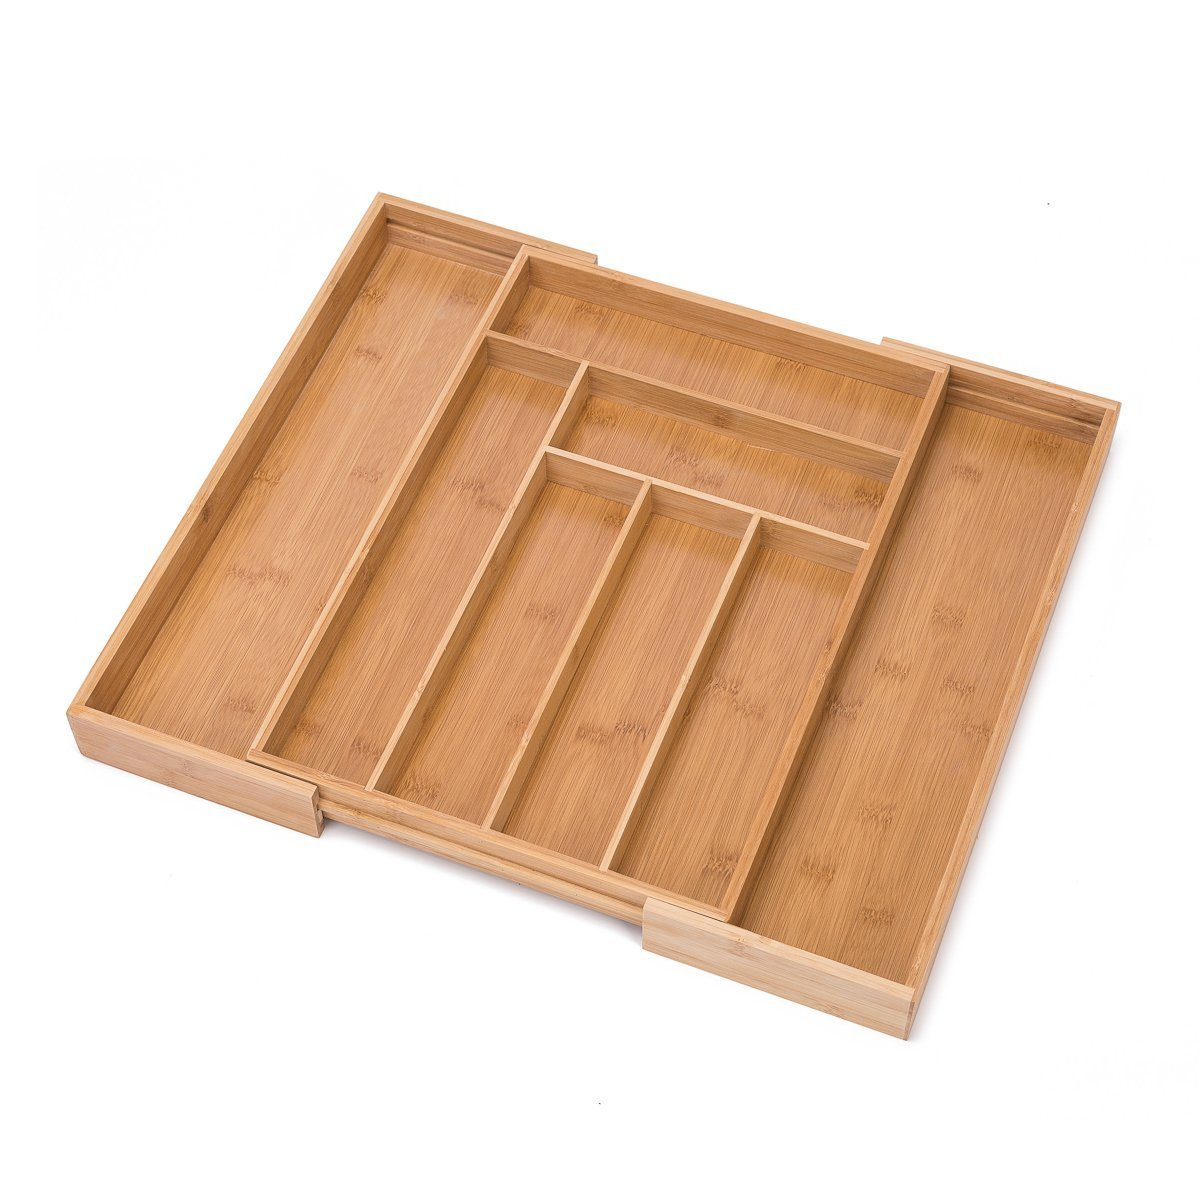 THY COLLECTIBLES Bamboo Expandable Kitchen Cutlery Utensils Drawer Organizer Premium 100% Pure Bamboo, Adjustable Kitchen Drawer Divider Tray